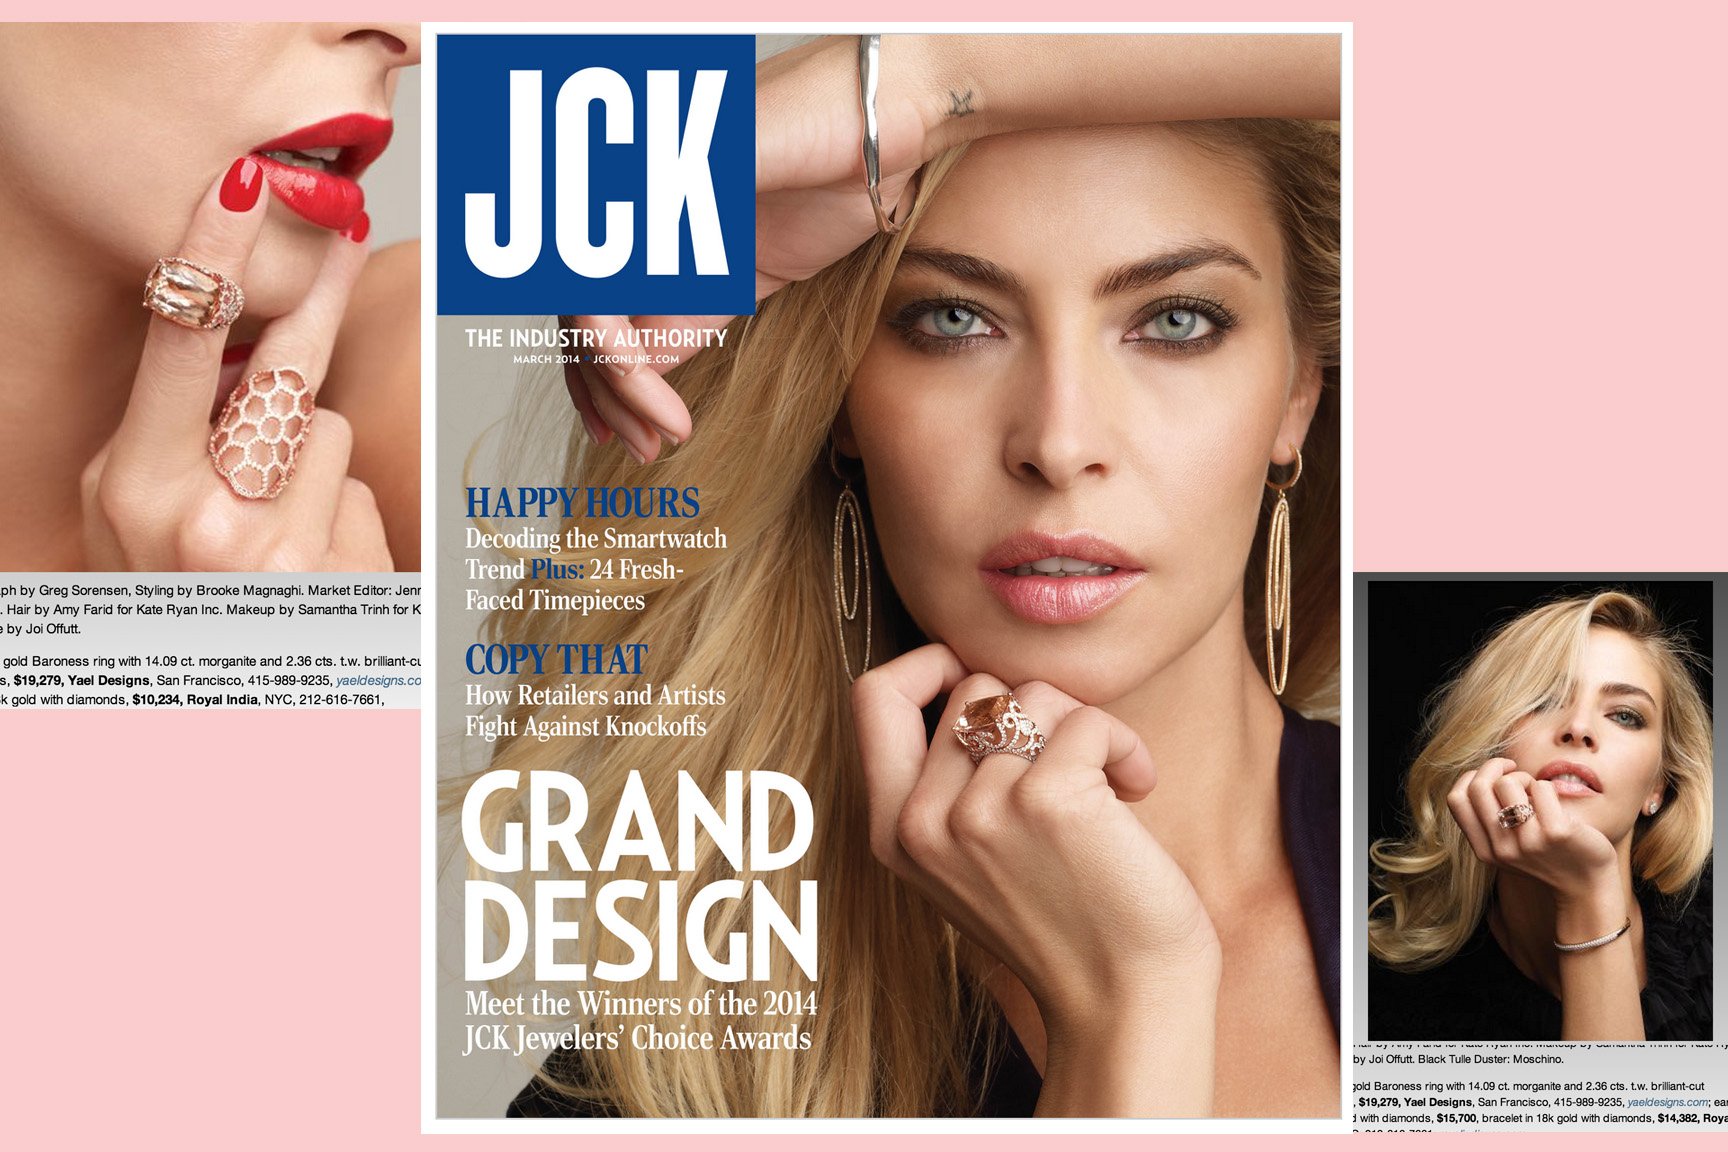 Check out our featured jewelry in the latest issue of JCK Magazine.